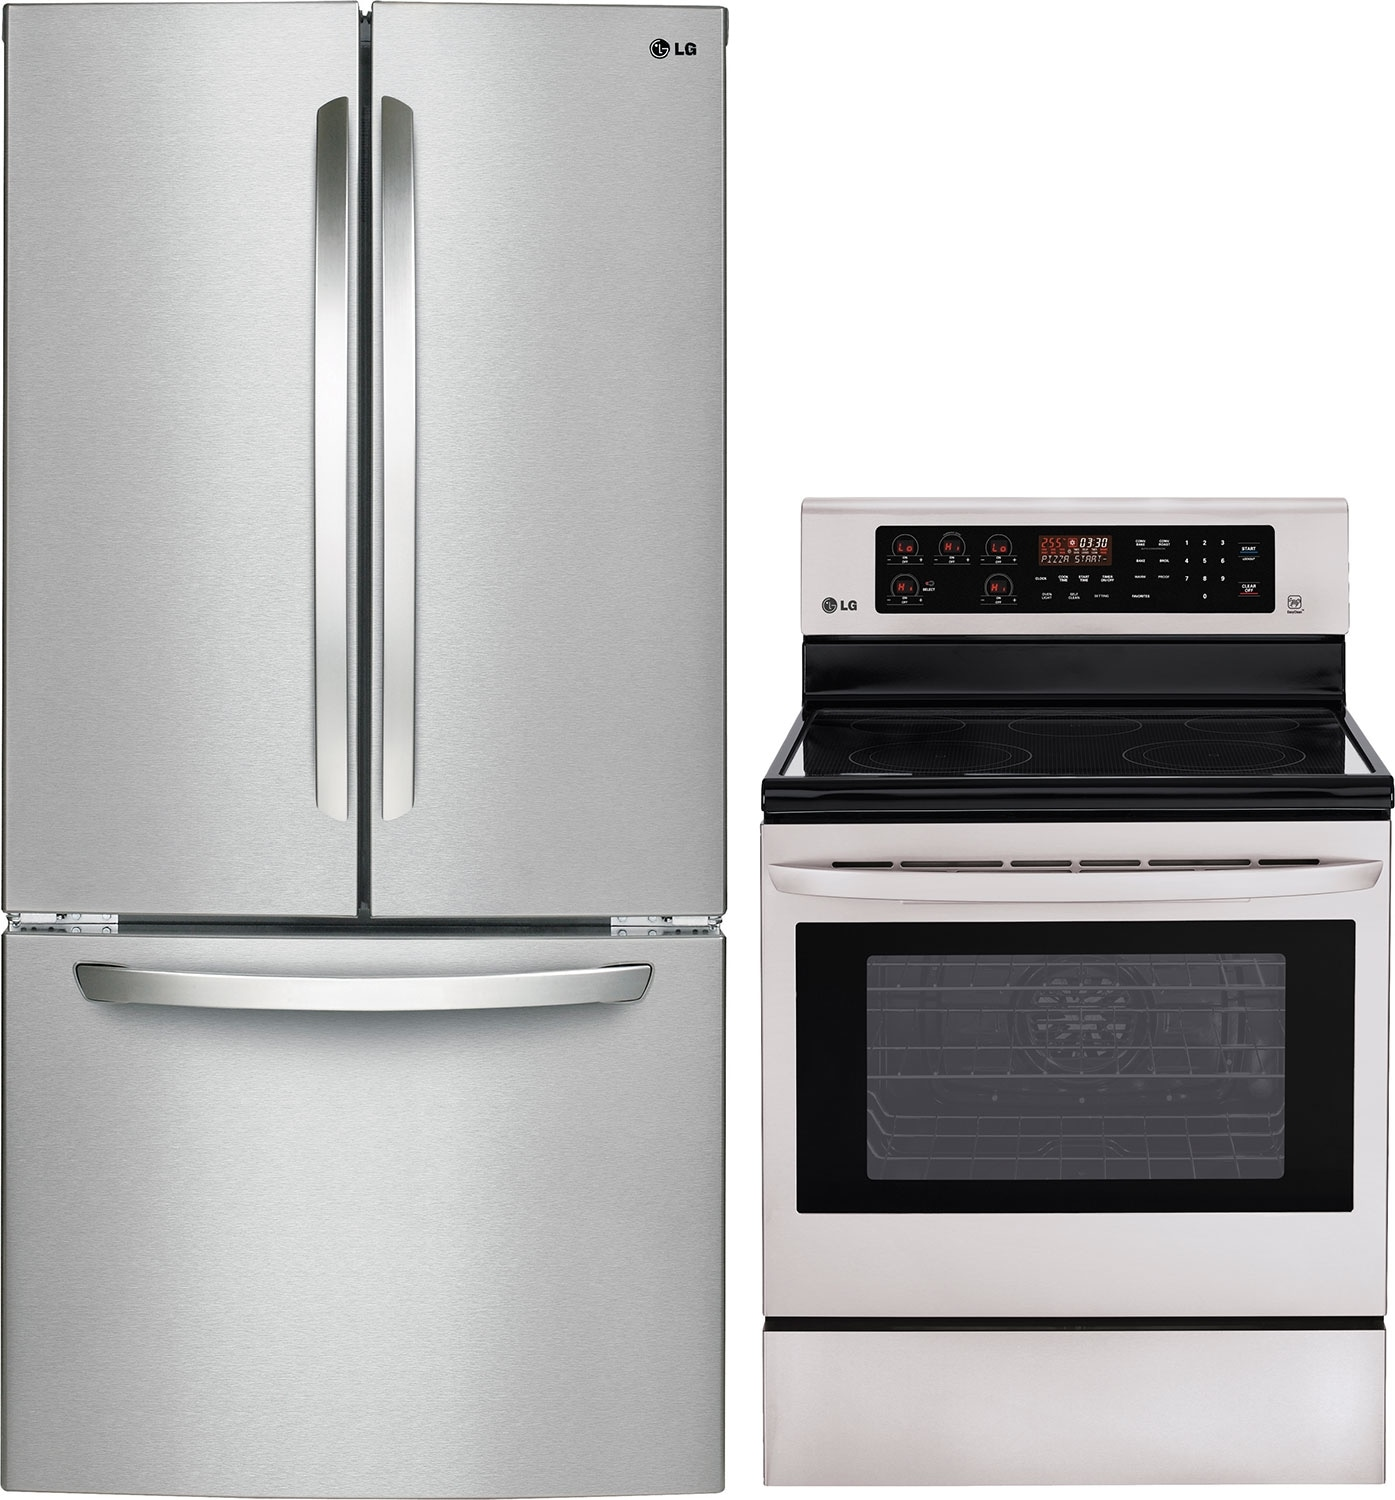 Refrigerators and Freezers - LG 24 Cu. Ft. French-Door Refrigerator and 6.3 Cu. Ft. Electric Range – Stainless Steel